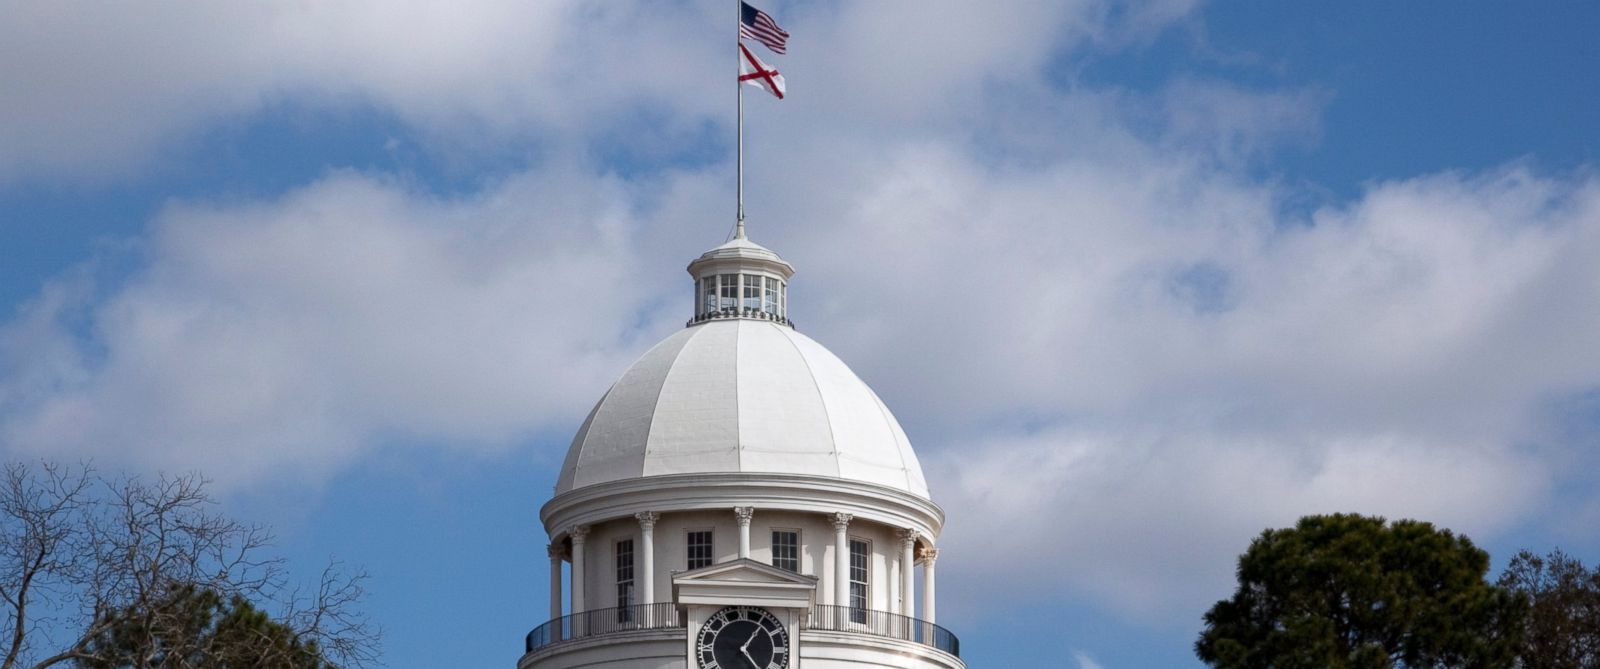 PHOTO: The Alabama State Capitol building in Montgomery, Ala.